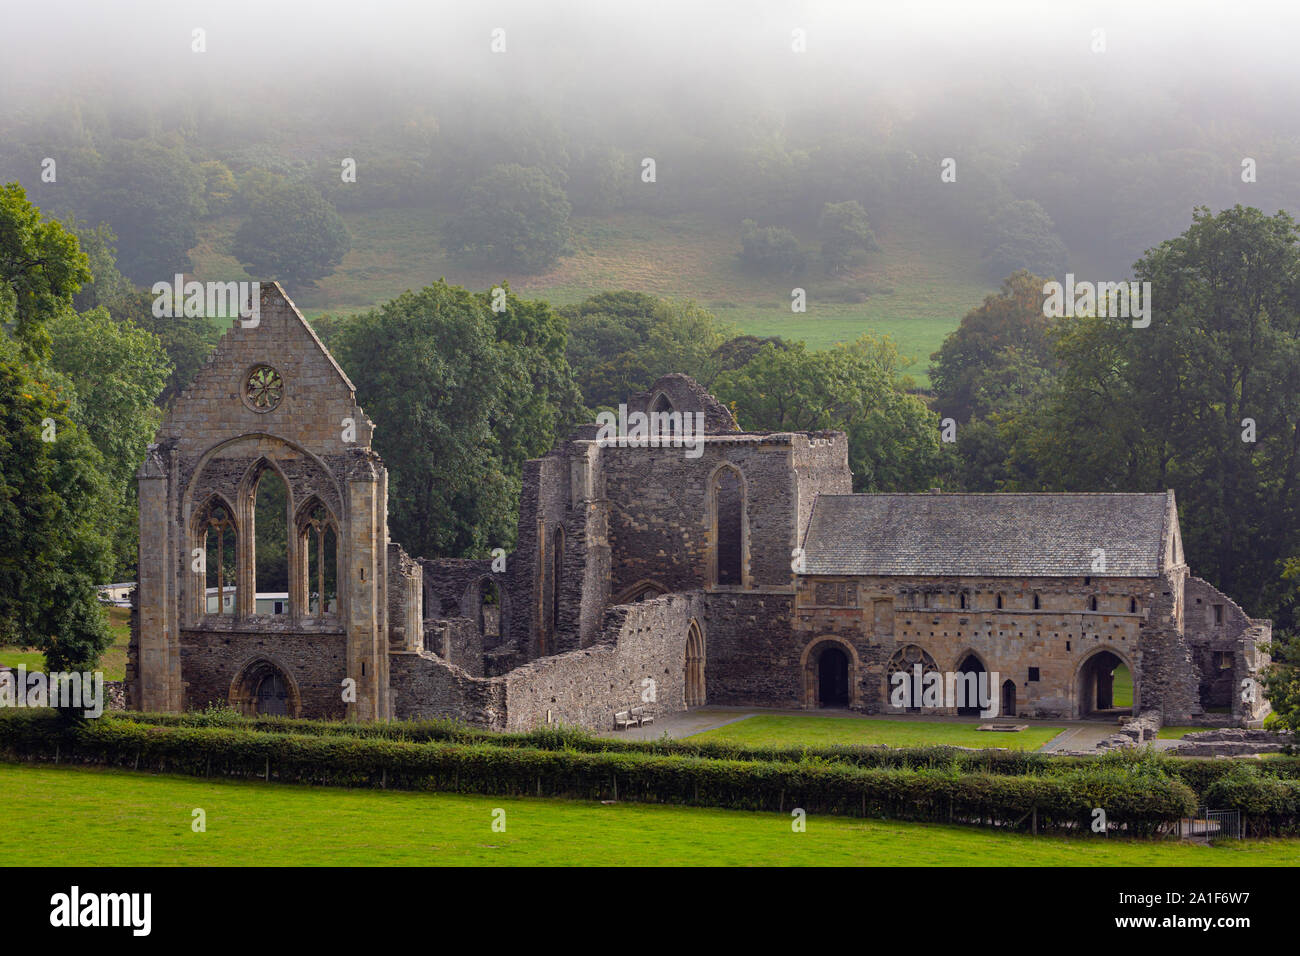 near Llangollen, Denbighshire, Wales, United Kingdom.  The Cistercian Valle Crucis Abbey or Valley of the Cross Abbey. Full name is Abbey Church of th Stock Photo